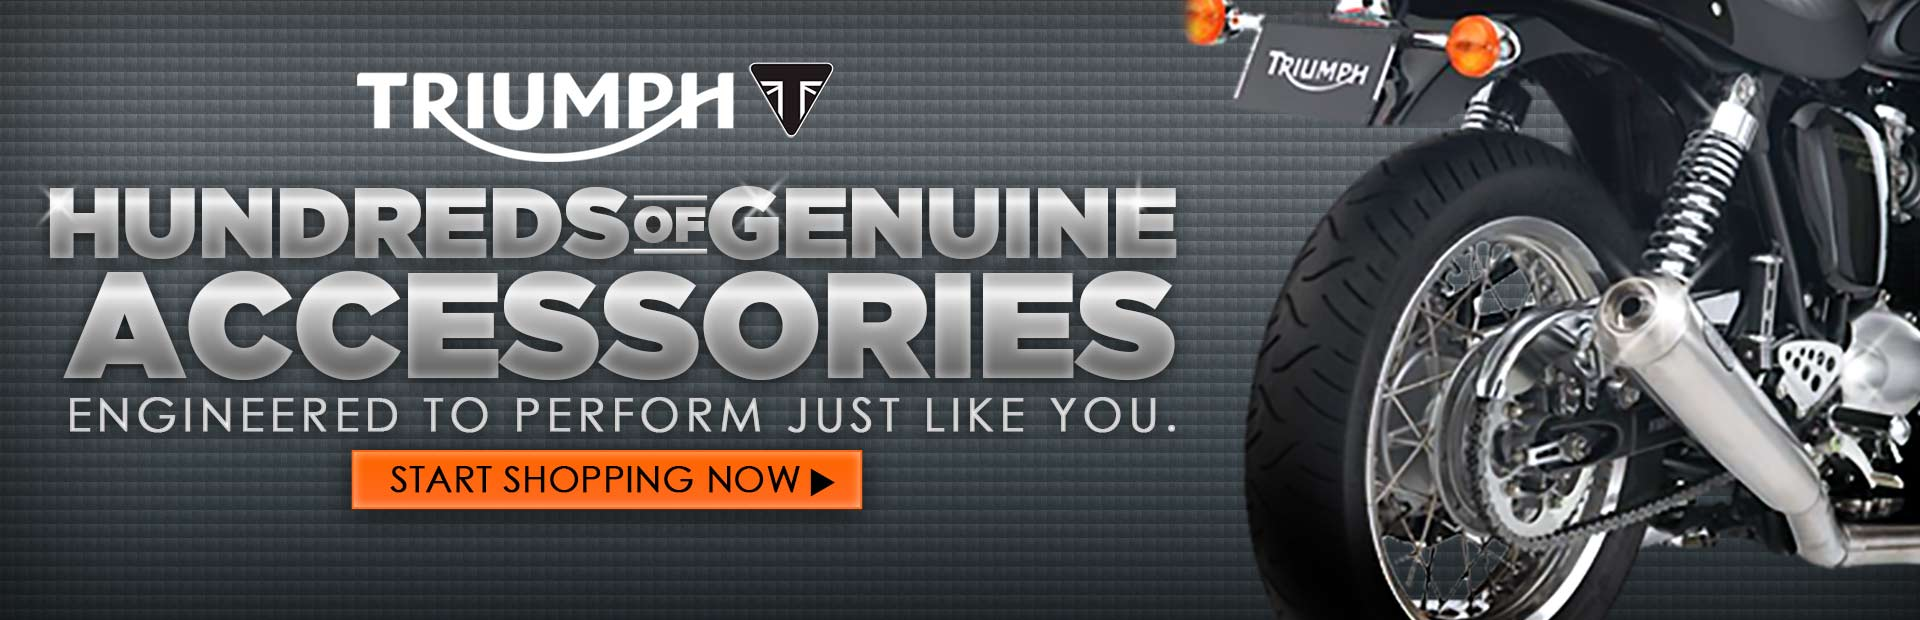 We have hundreds of genuine Triumph accessories engineered to perform just like you. Click here to start shopping now.